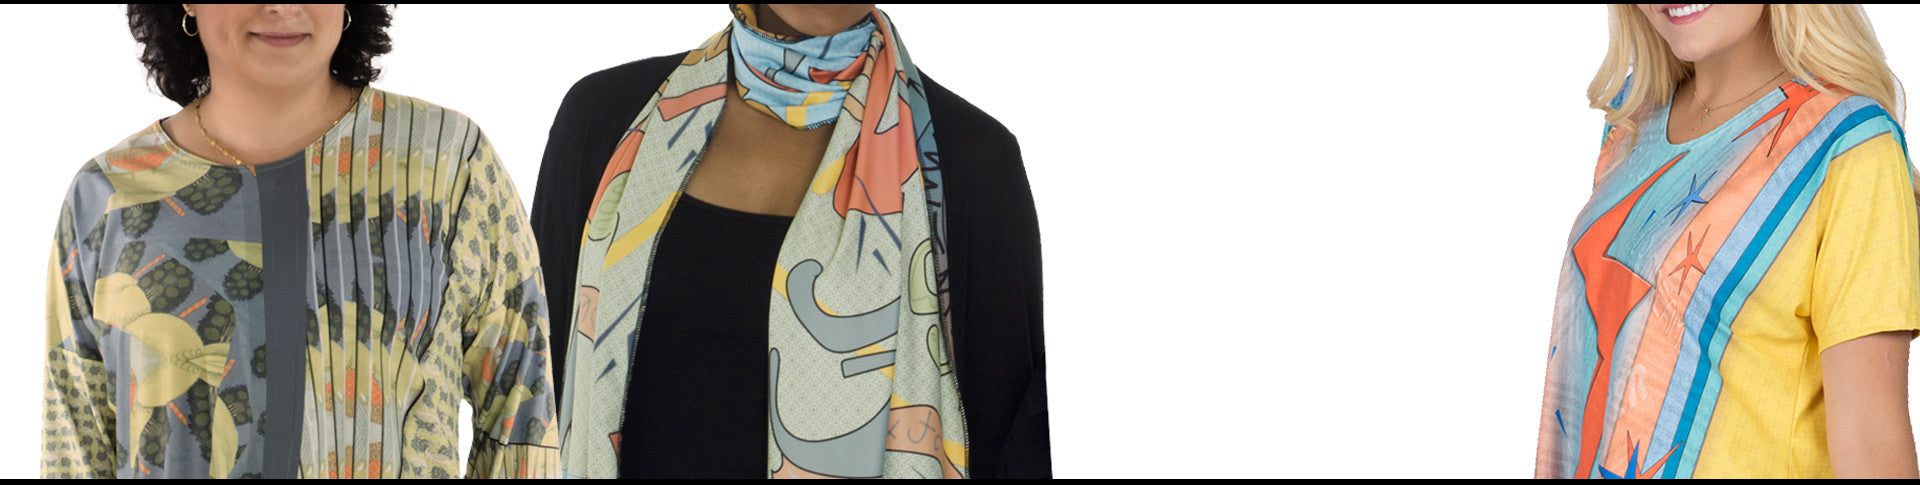 Ruby Linker Artistic Prints for Women